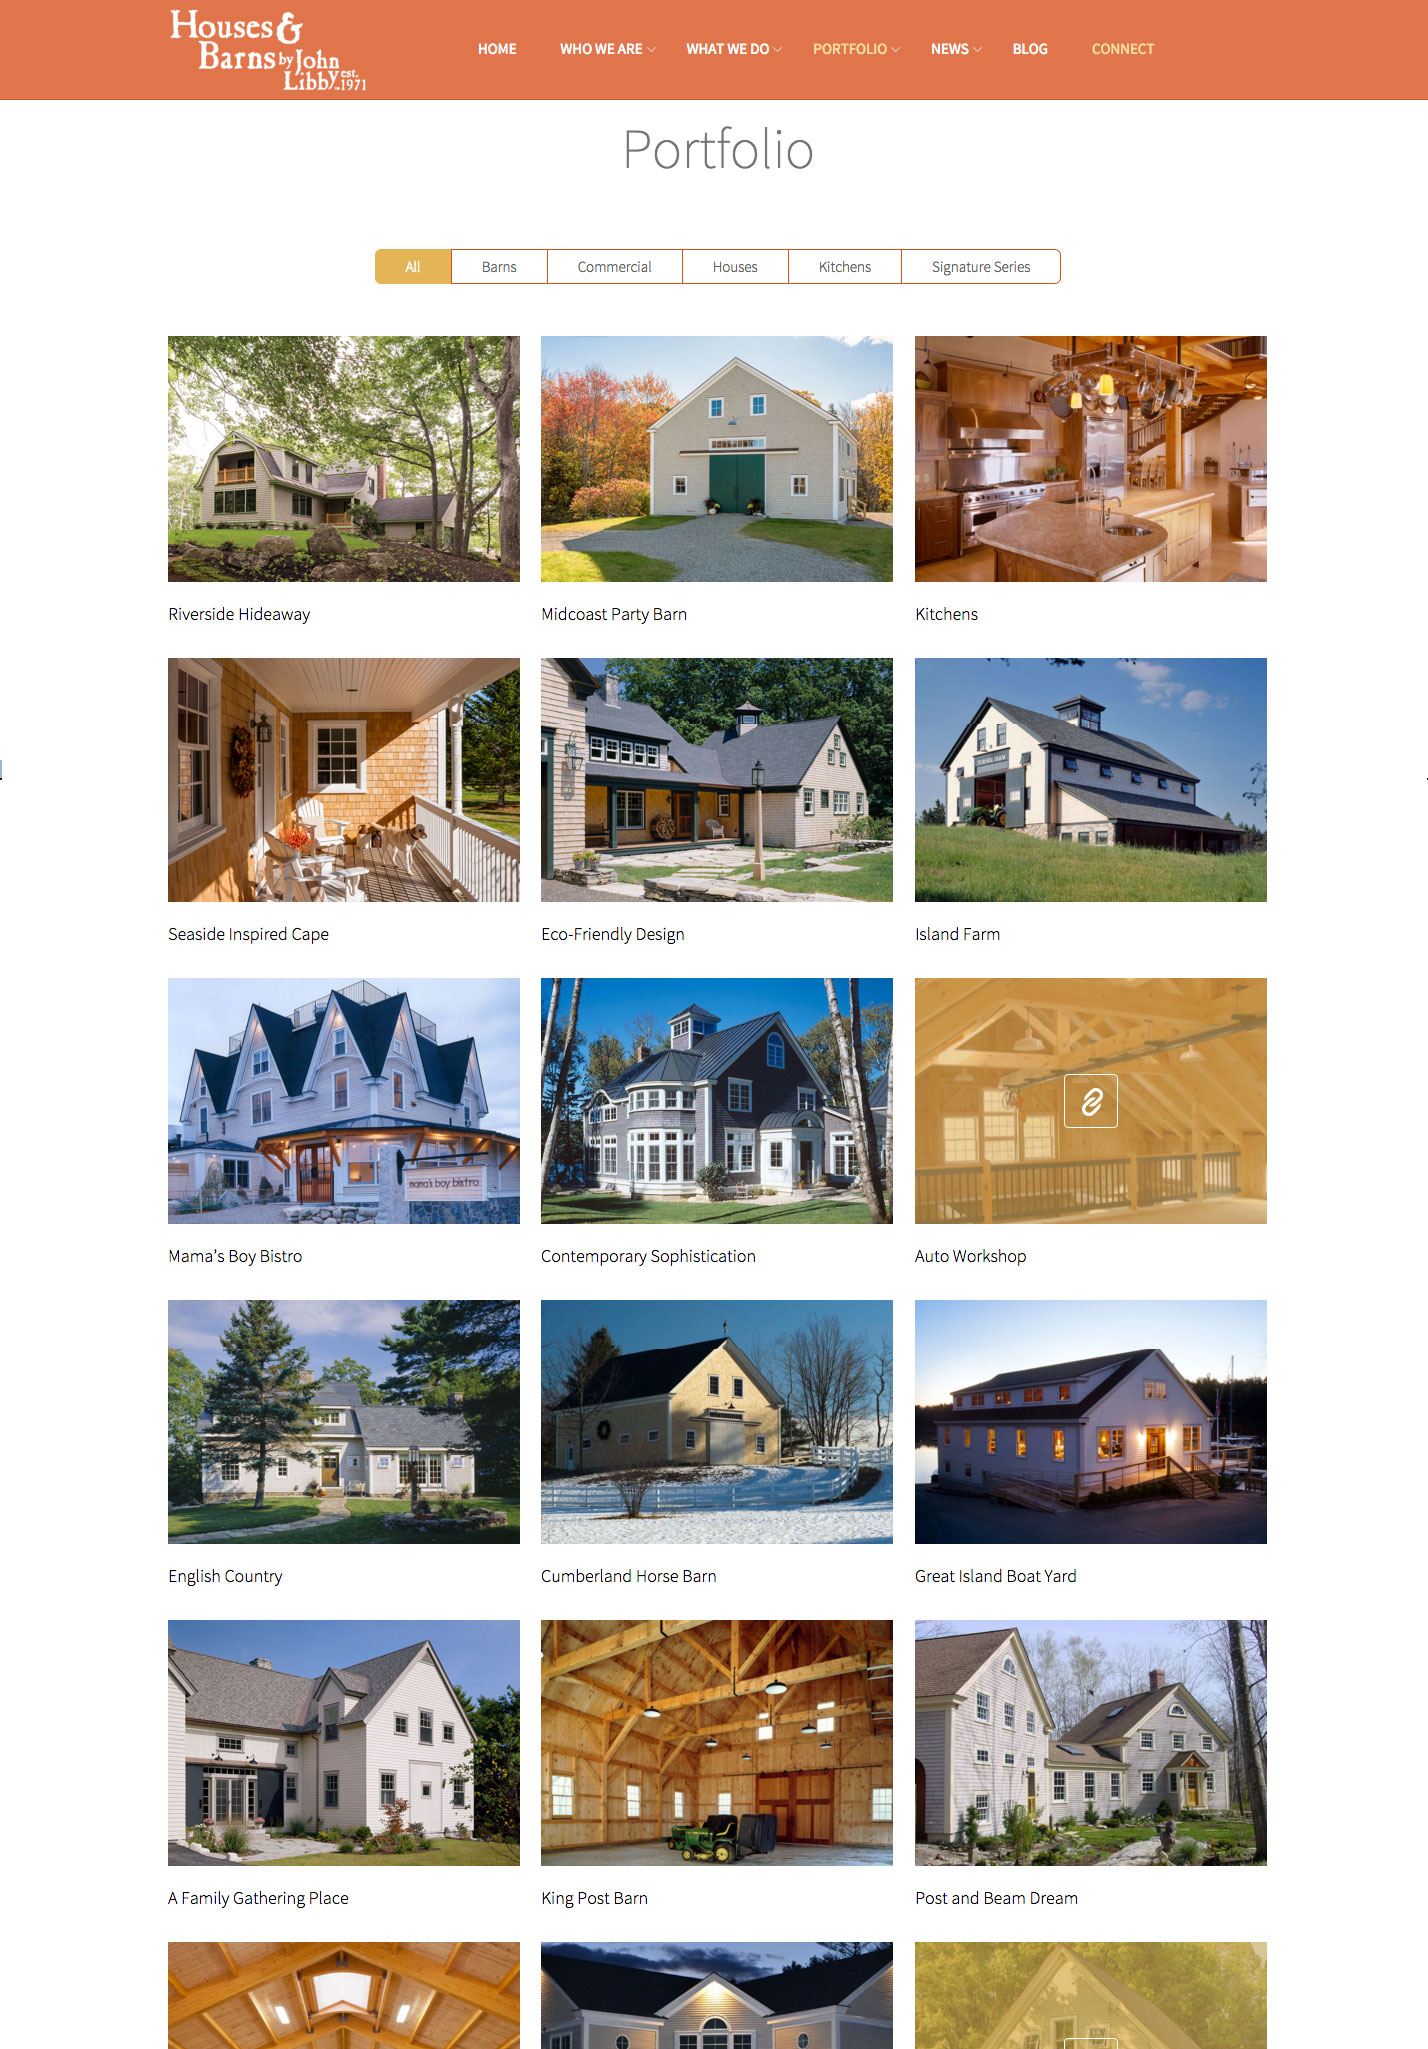 Houses & Barns website portfolio